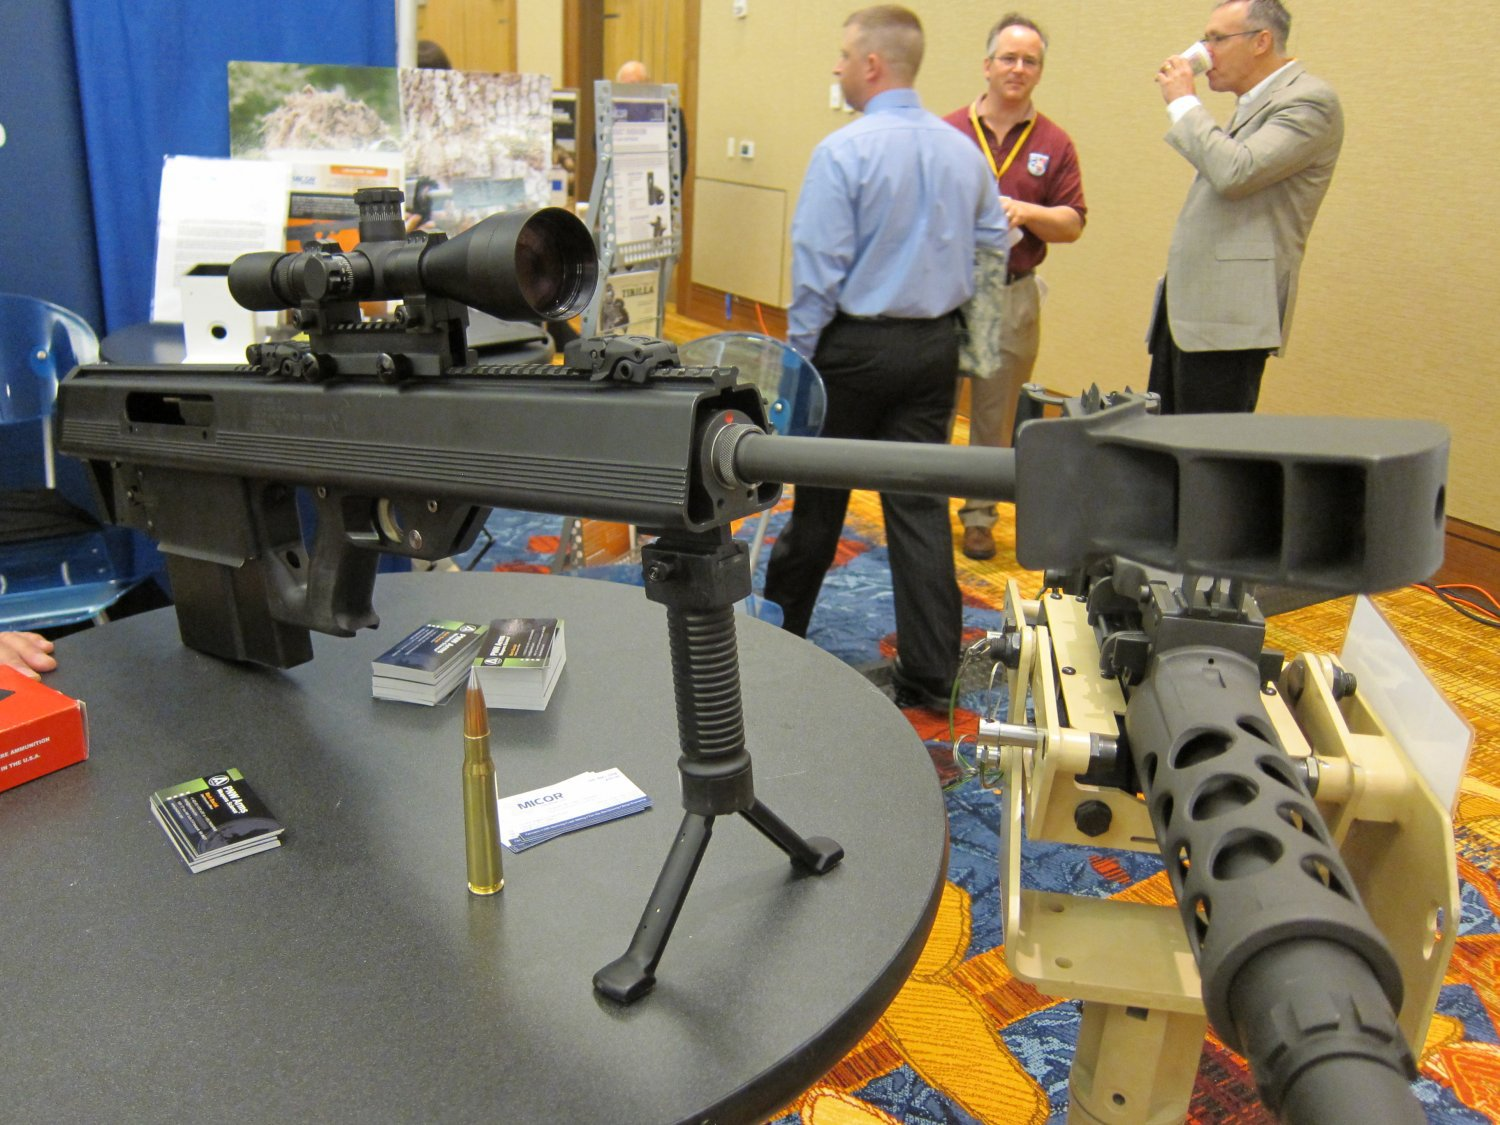 Micor Leader 50 Lightweight Bullpup Semi Auto .50 BMG Sniper Anti Materiel Rifle NDIA Small Arms Symposium 2011 DefenseReview.com DR 8 <!  :en  >MICOR Defense Leader 50 Ultra Compact, Lightweight Bullpup Semi Auto .50 BMG (12.7x99mm NATO) Sniper/Anti Materiel Rifle and PNW Arms Weapons Science .50BMG Ammo at NDIA Infantry Small Arms Systems Symposium 2011: Potential Long Range Lethality Game Changer Combo for 21st Century Infantry Warfare (Photos and Video!)<!  :  >